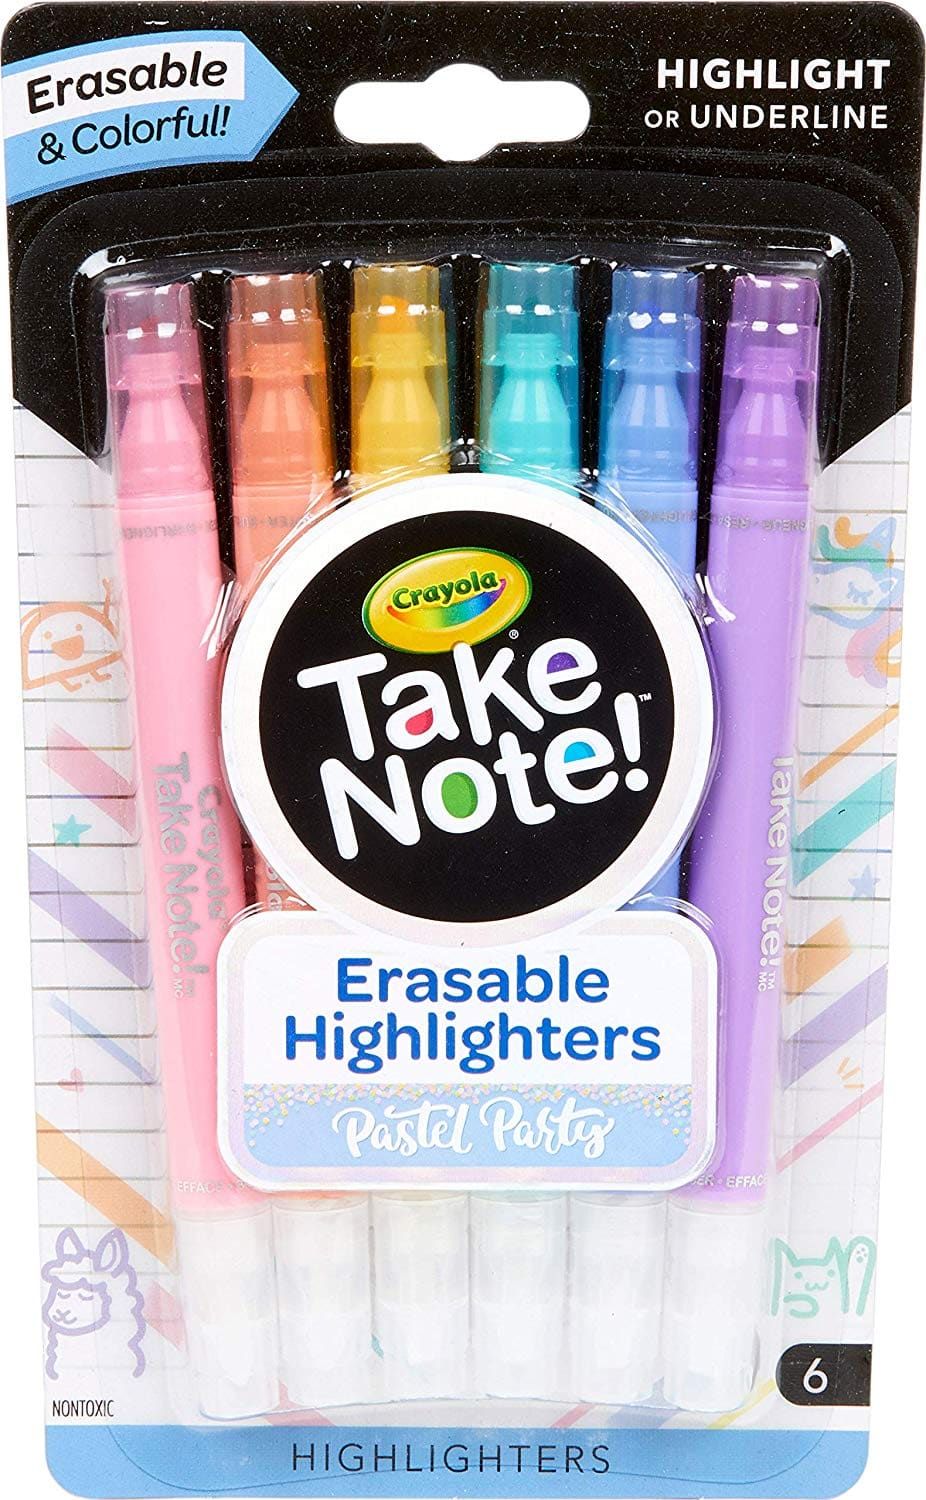 Crayola Take Note! Dual Ended Highlighters Pastel Party, Multi - $3.00 at Amazon + free shipping with prime